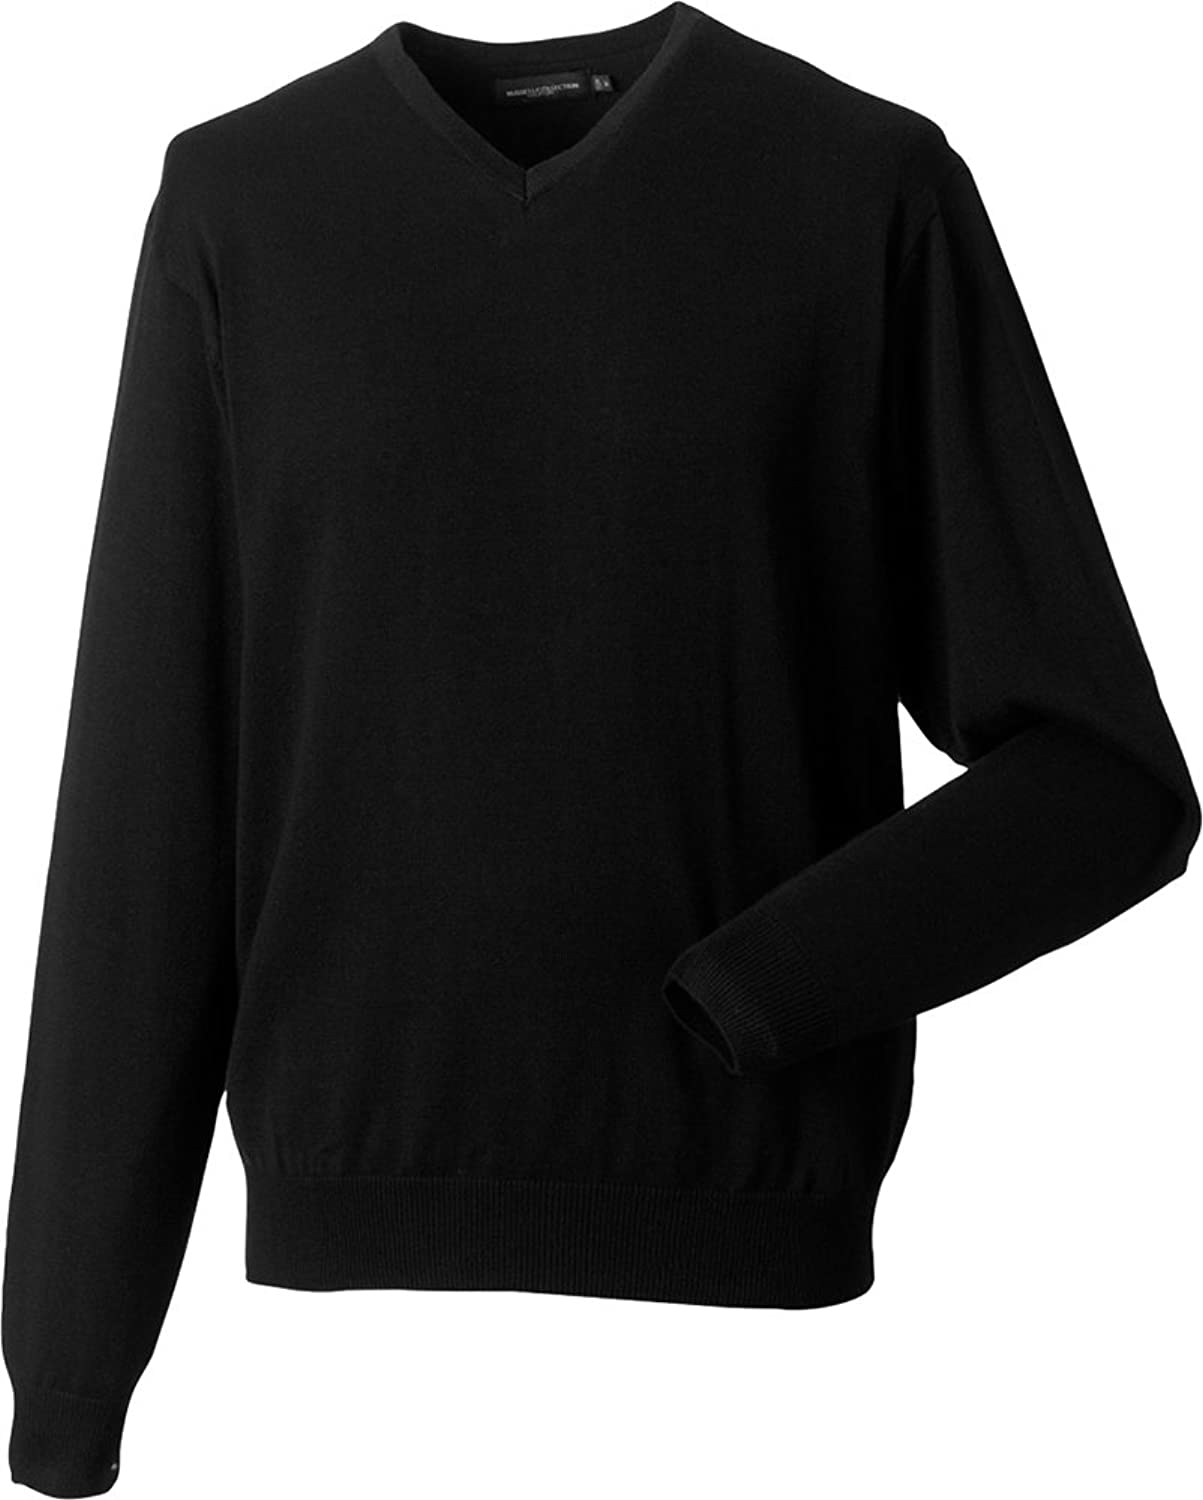 Russell Collection V-Neck Knitted Mens Pullover Soft Warm Gents Fleece Outerwear